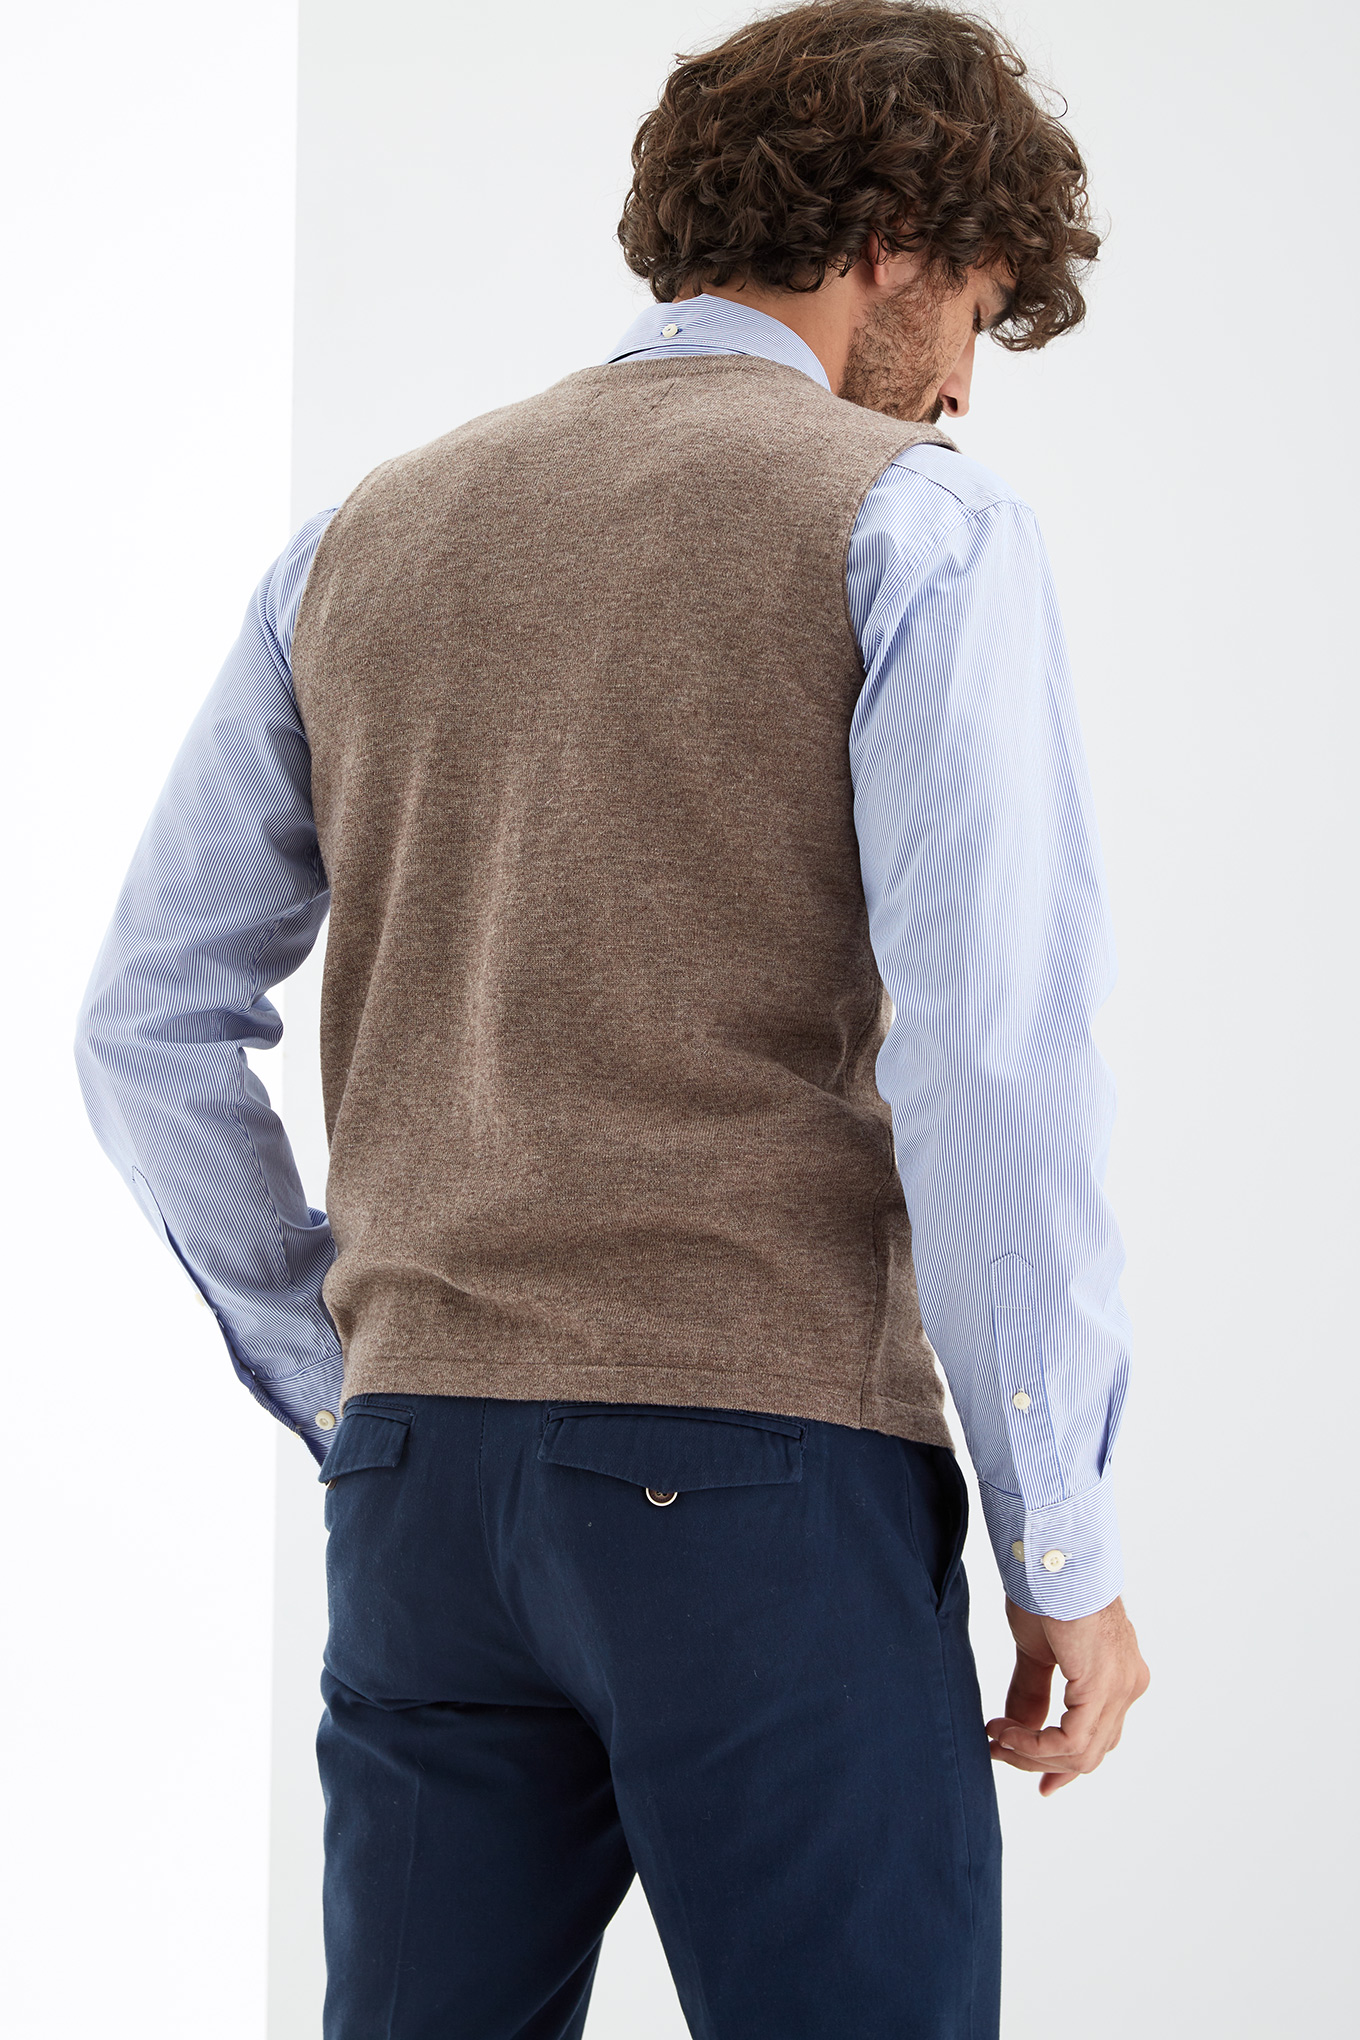 Waist Coat Sweater Dark Beige Sport Man